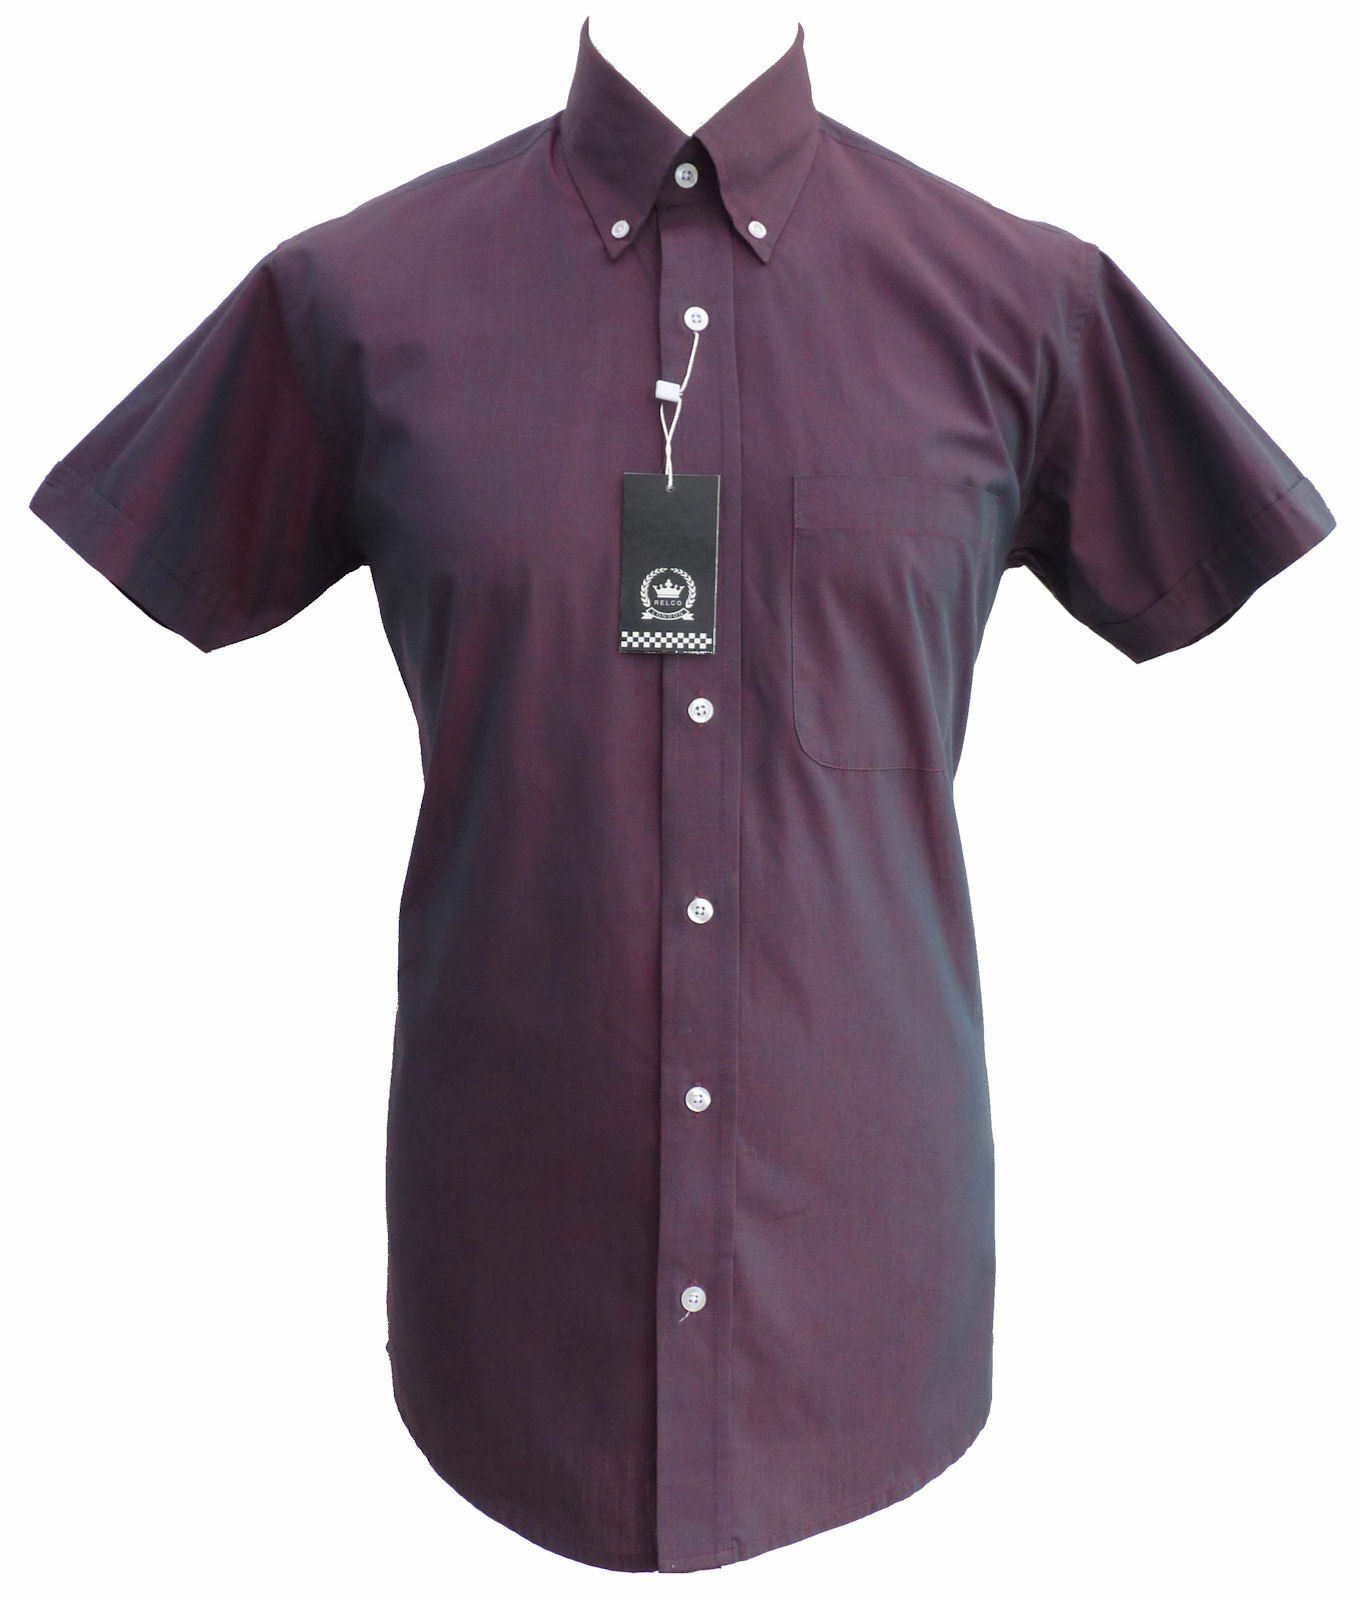 Relco Mens Burgundy TONIC Short Sleeve Shirt Two Tone NEW Mod Skin Vintage Retro    | Eleganter Stil